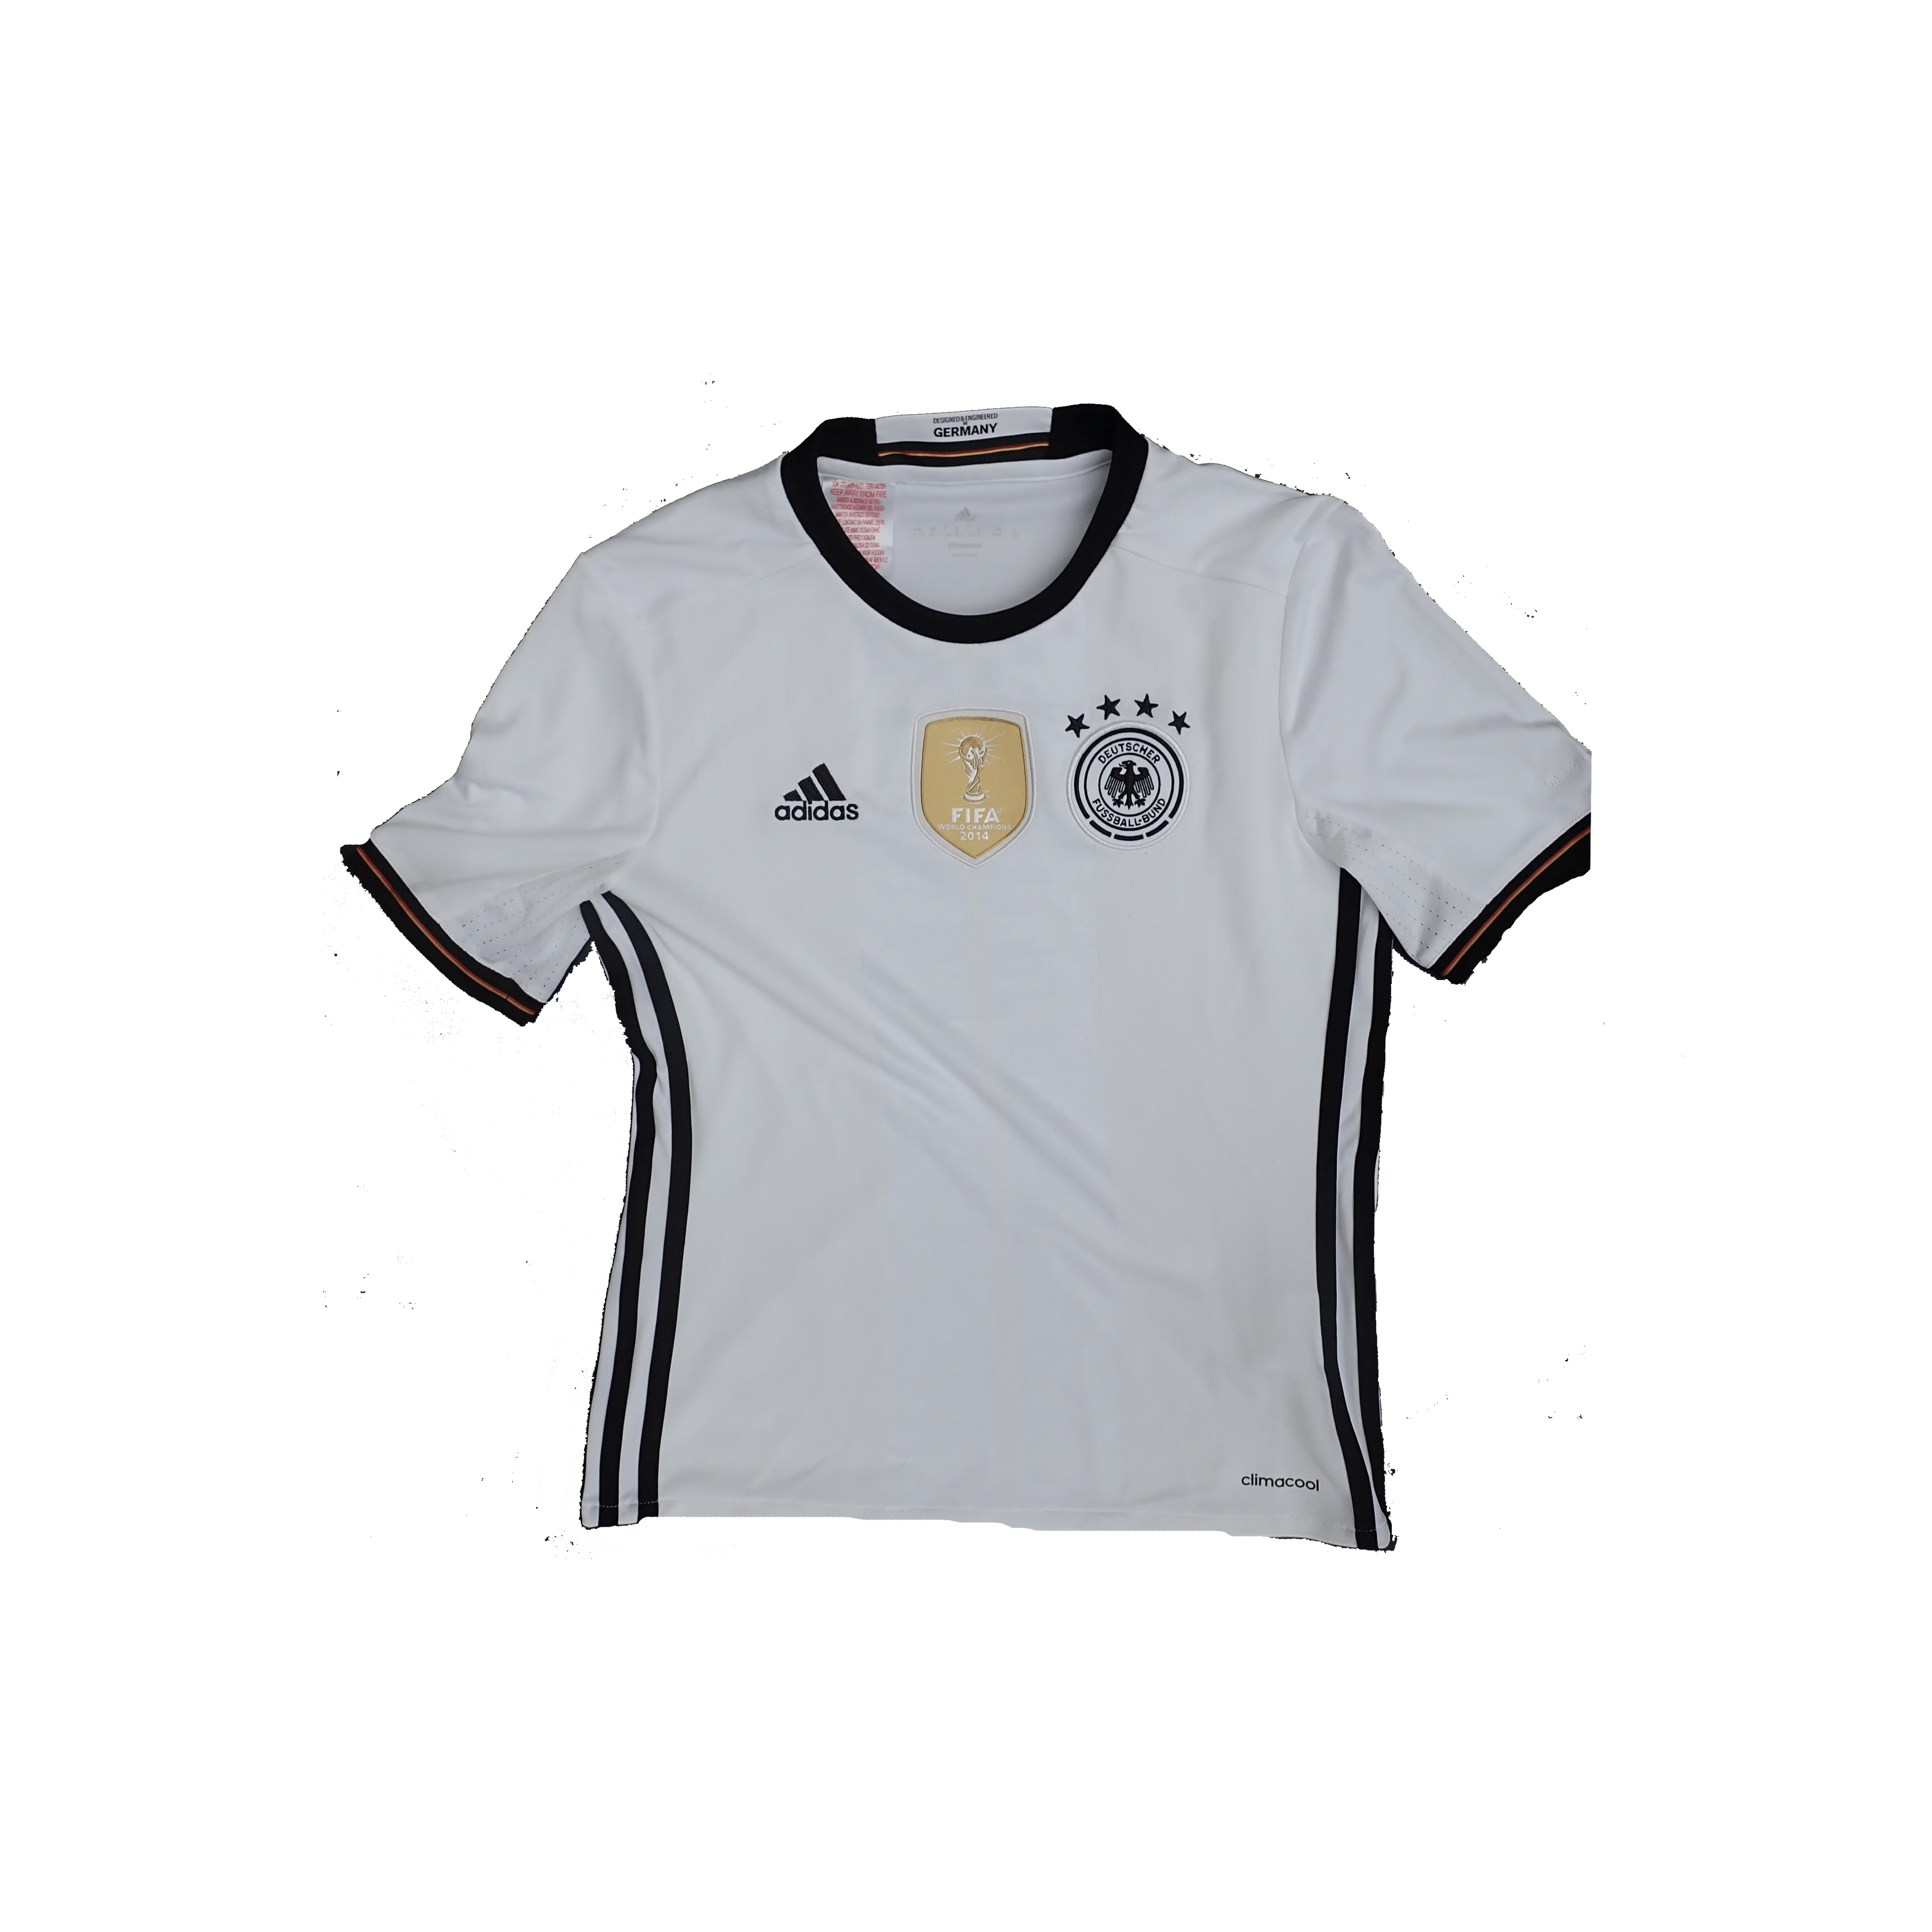 Adidas Germany World Cup 2014 Jersey